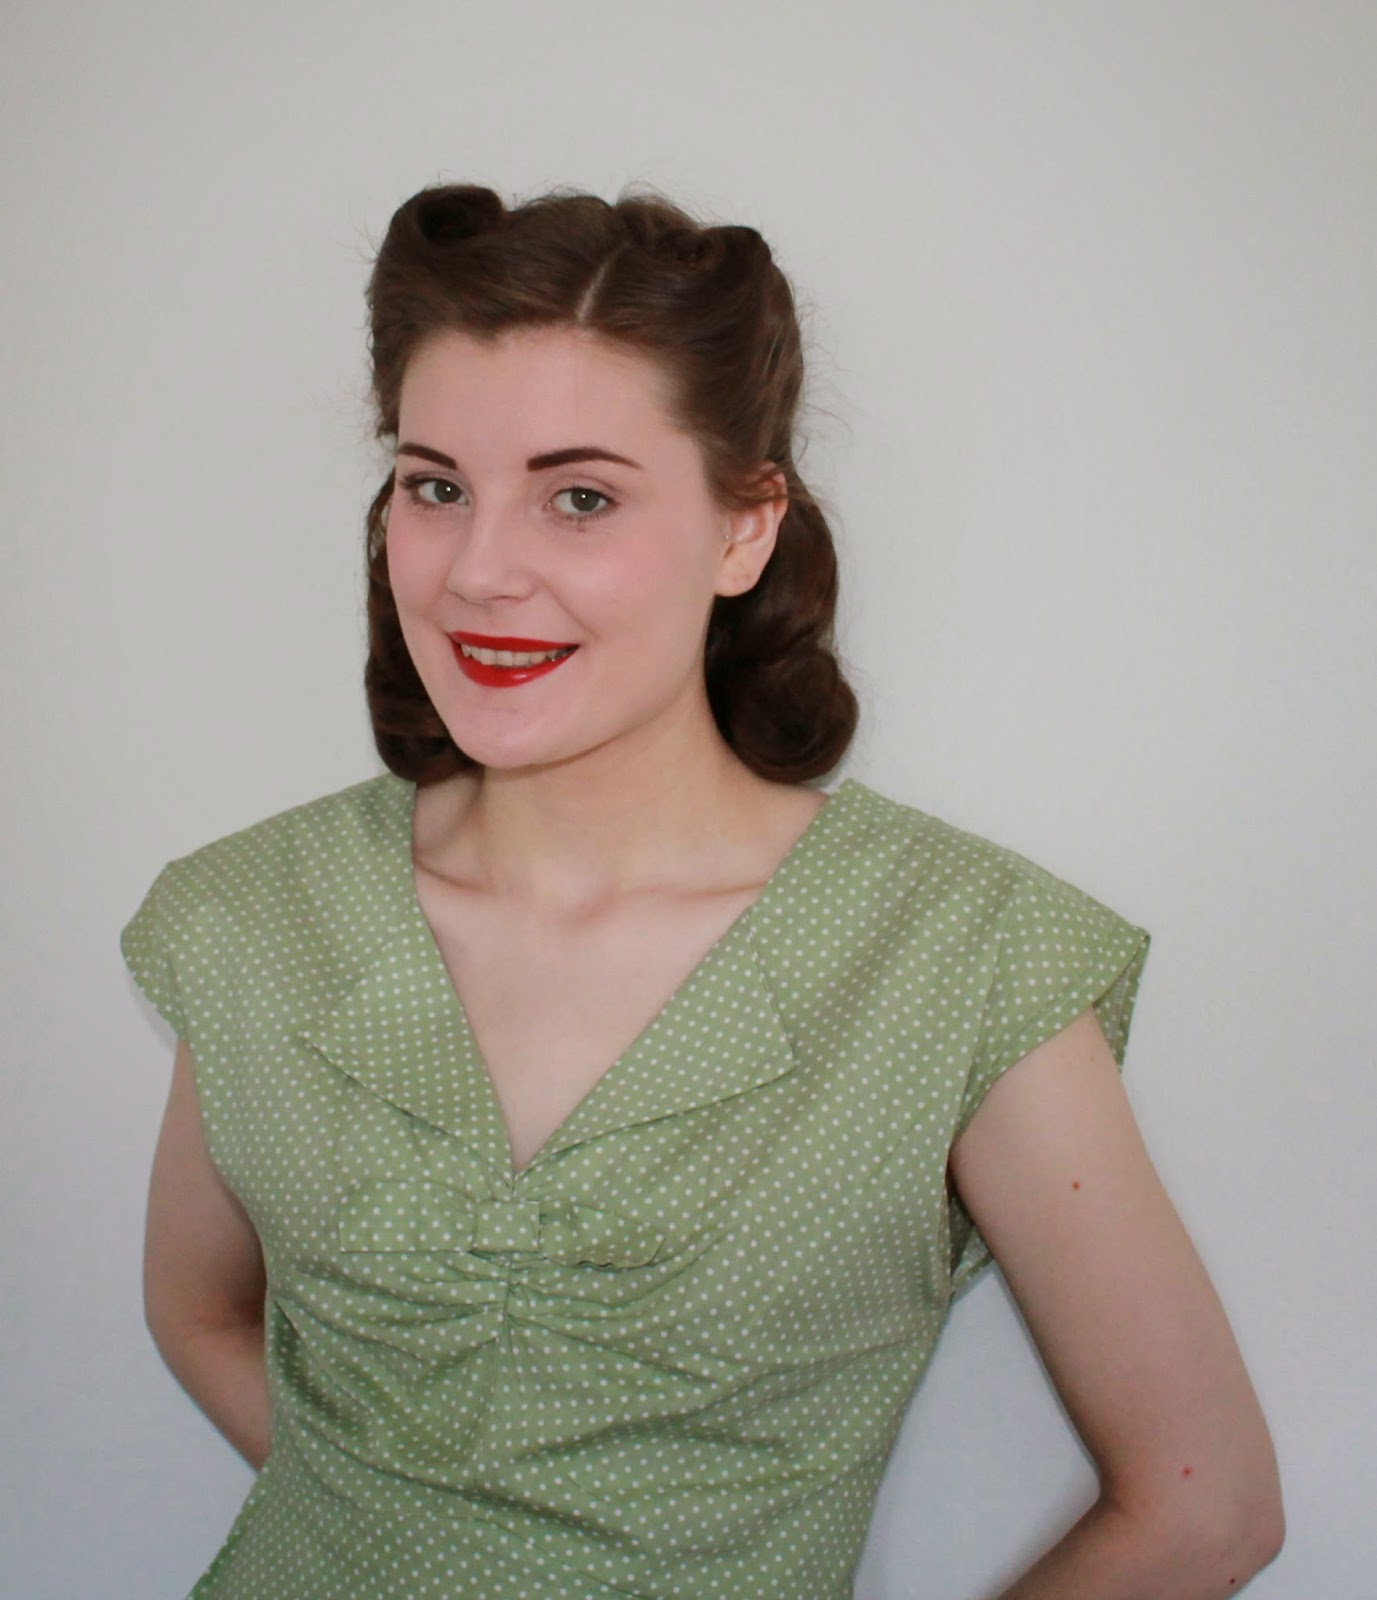 vintage hairnet experience via lovebirds vintage